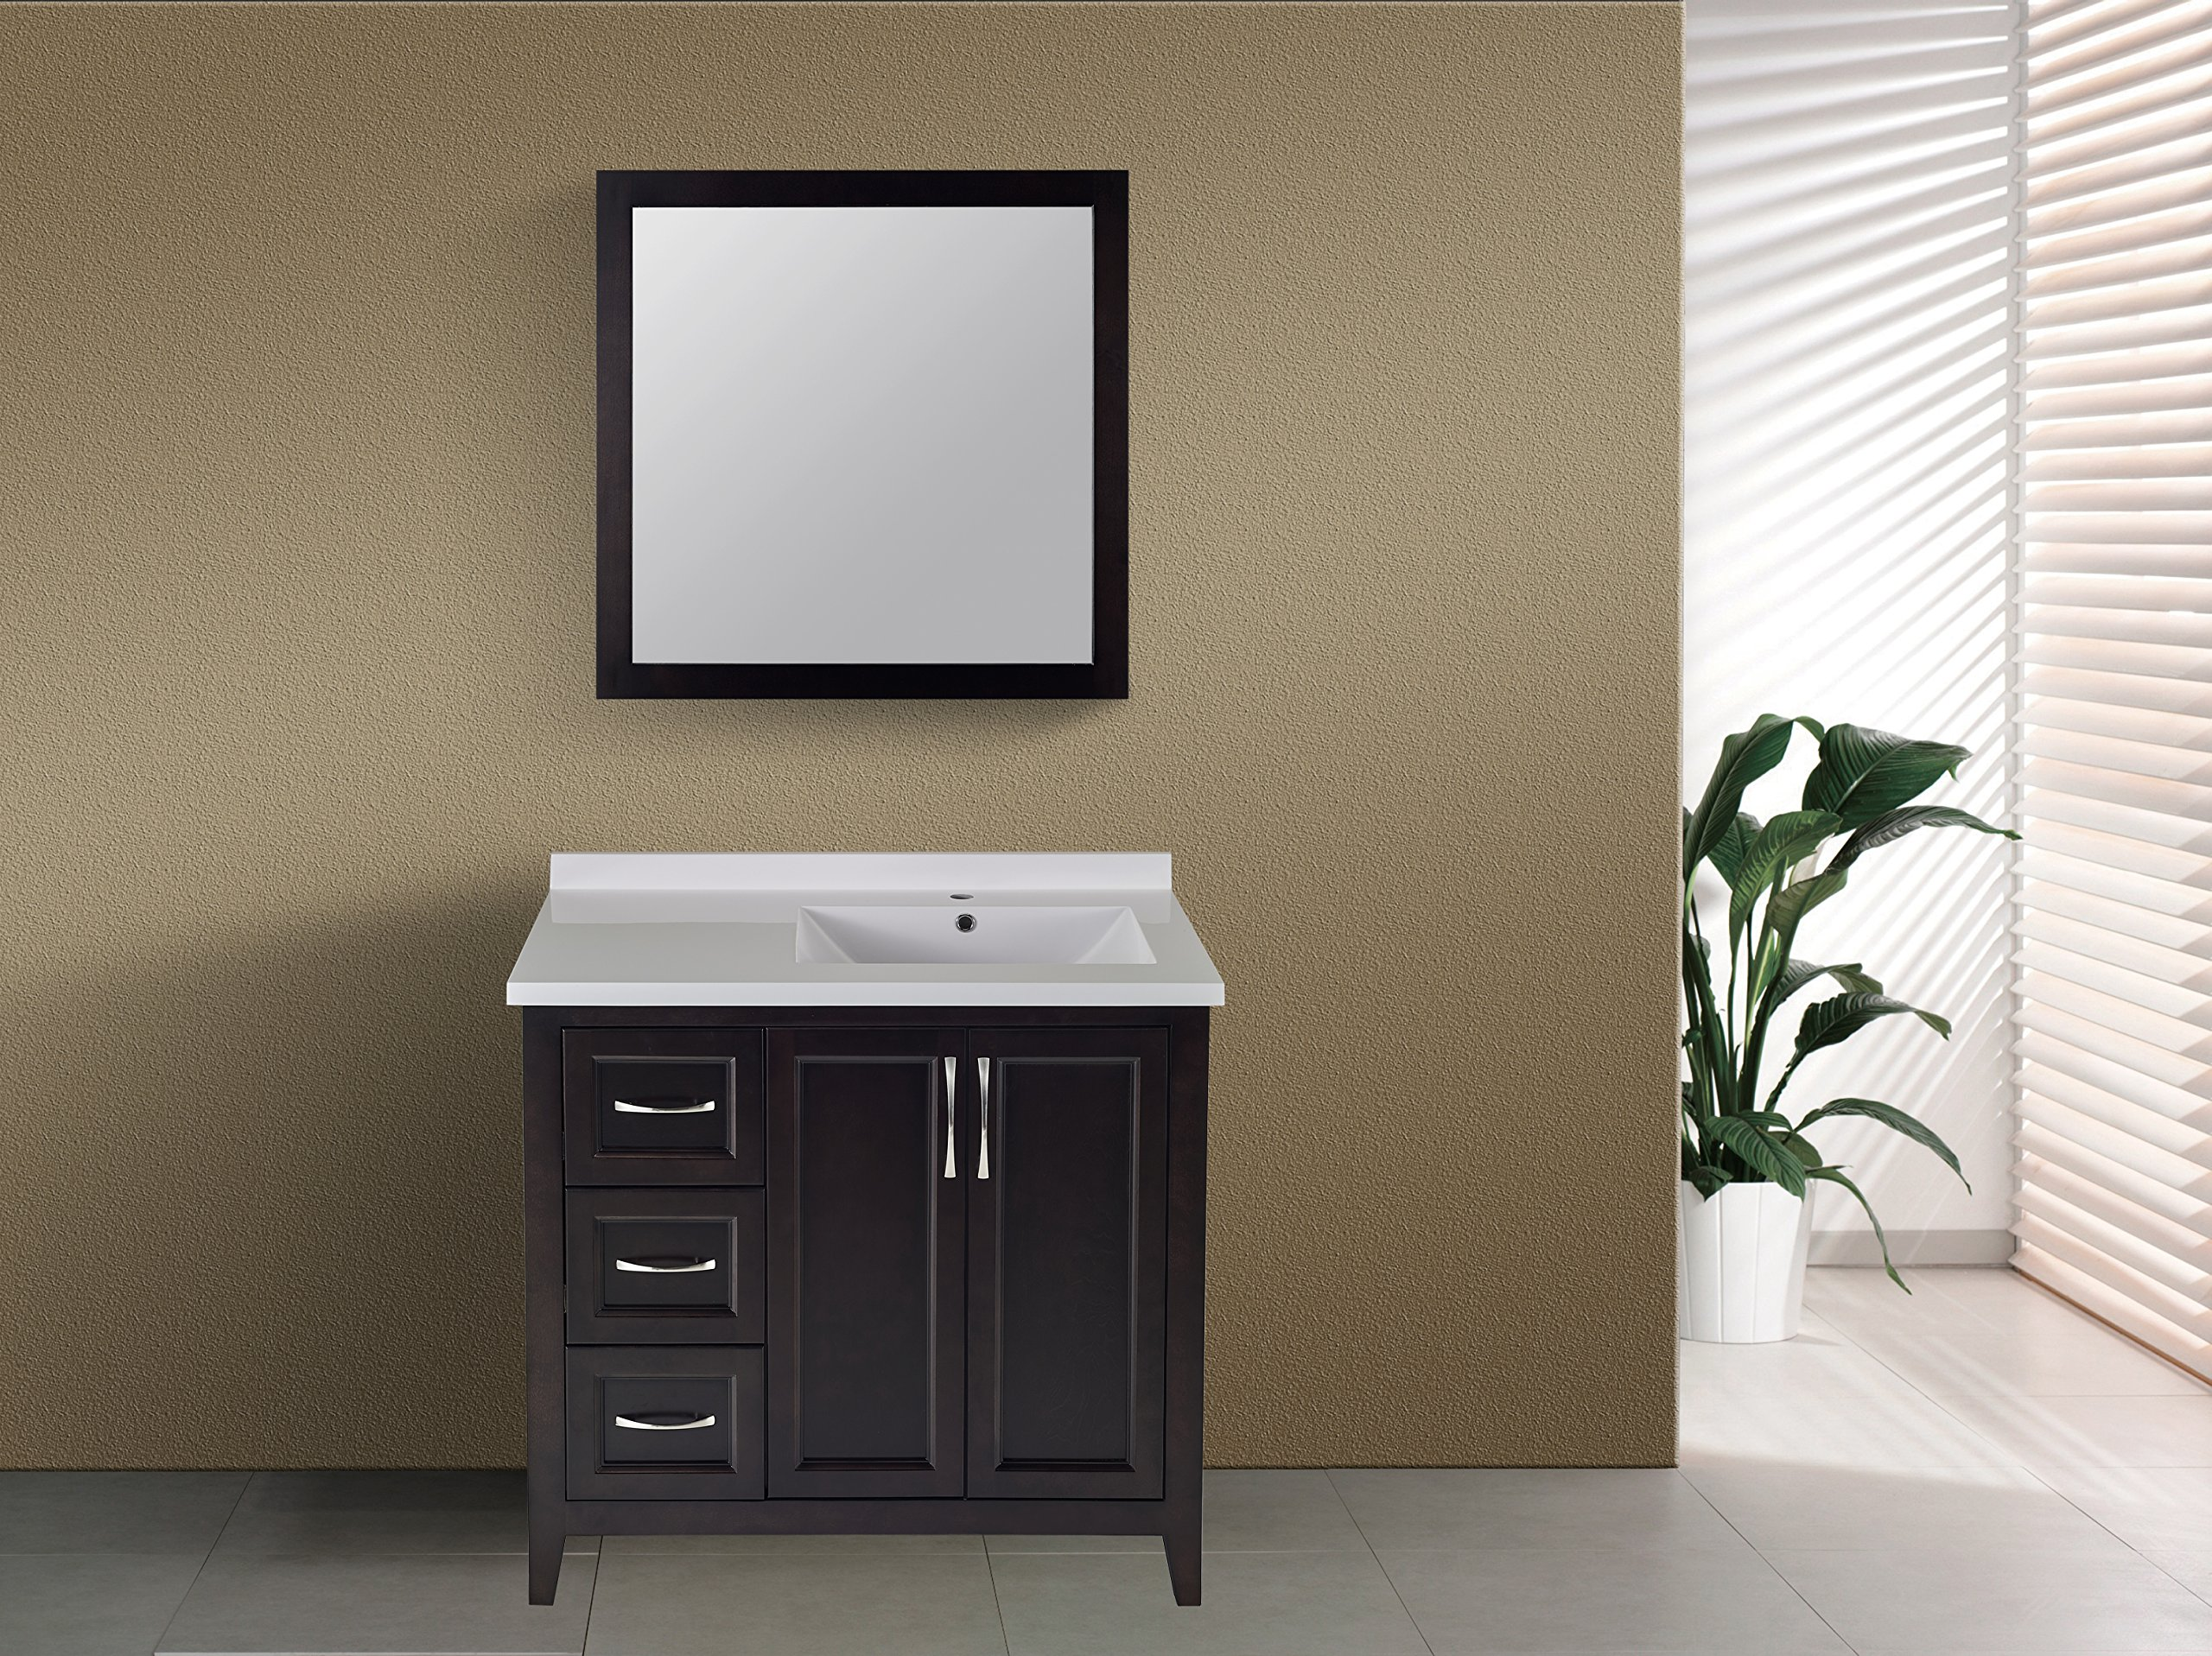 Winette New 36'' Espresso Single Bathroom Vanity Set with One Piece Built White Cultured Marble Countertop and Sink, 2 Doors, 3 Drawers, Matching Mirror A-WVM36E Sold Separately by Winette